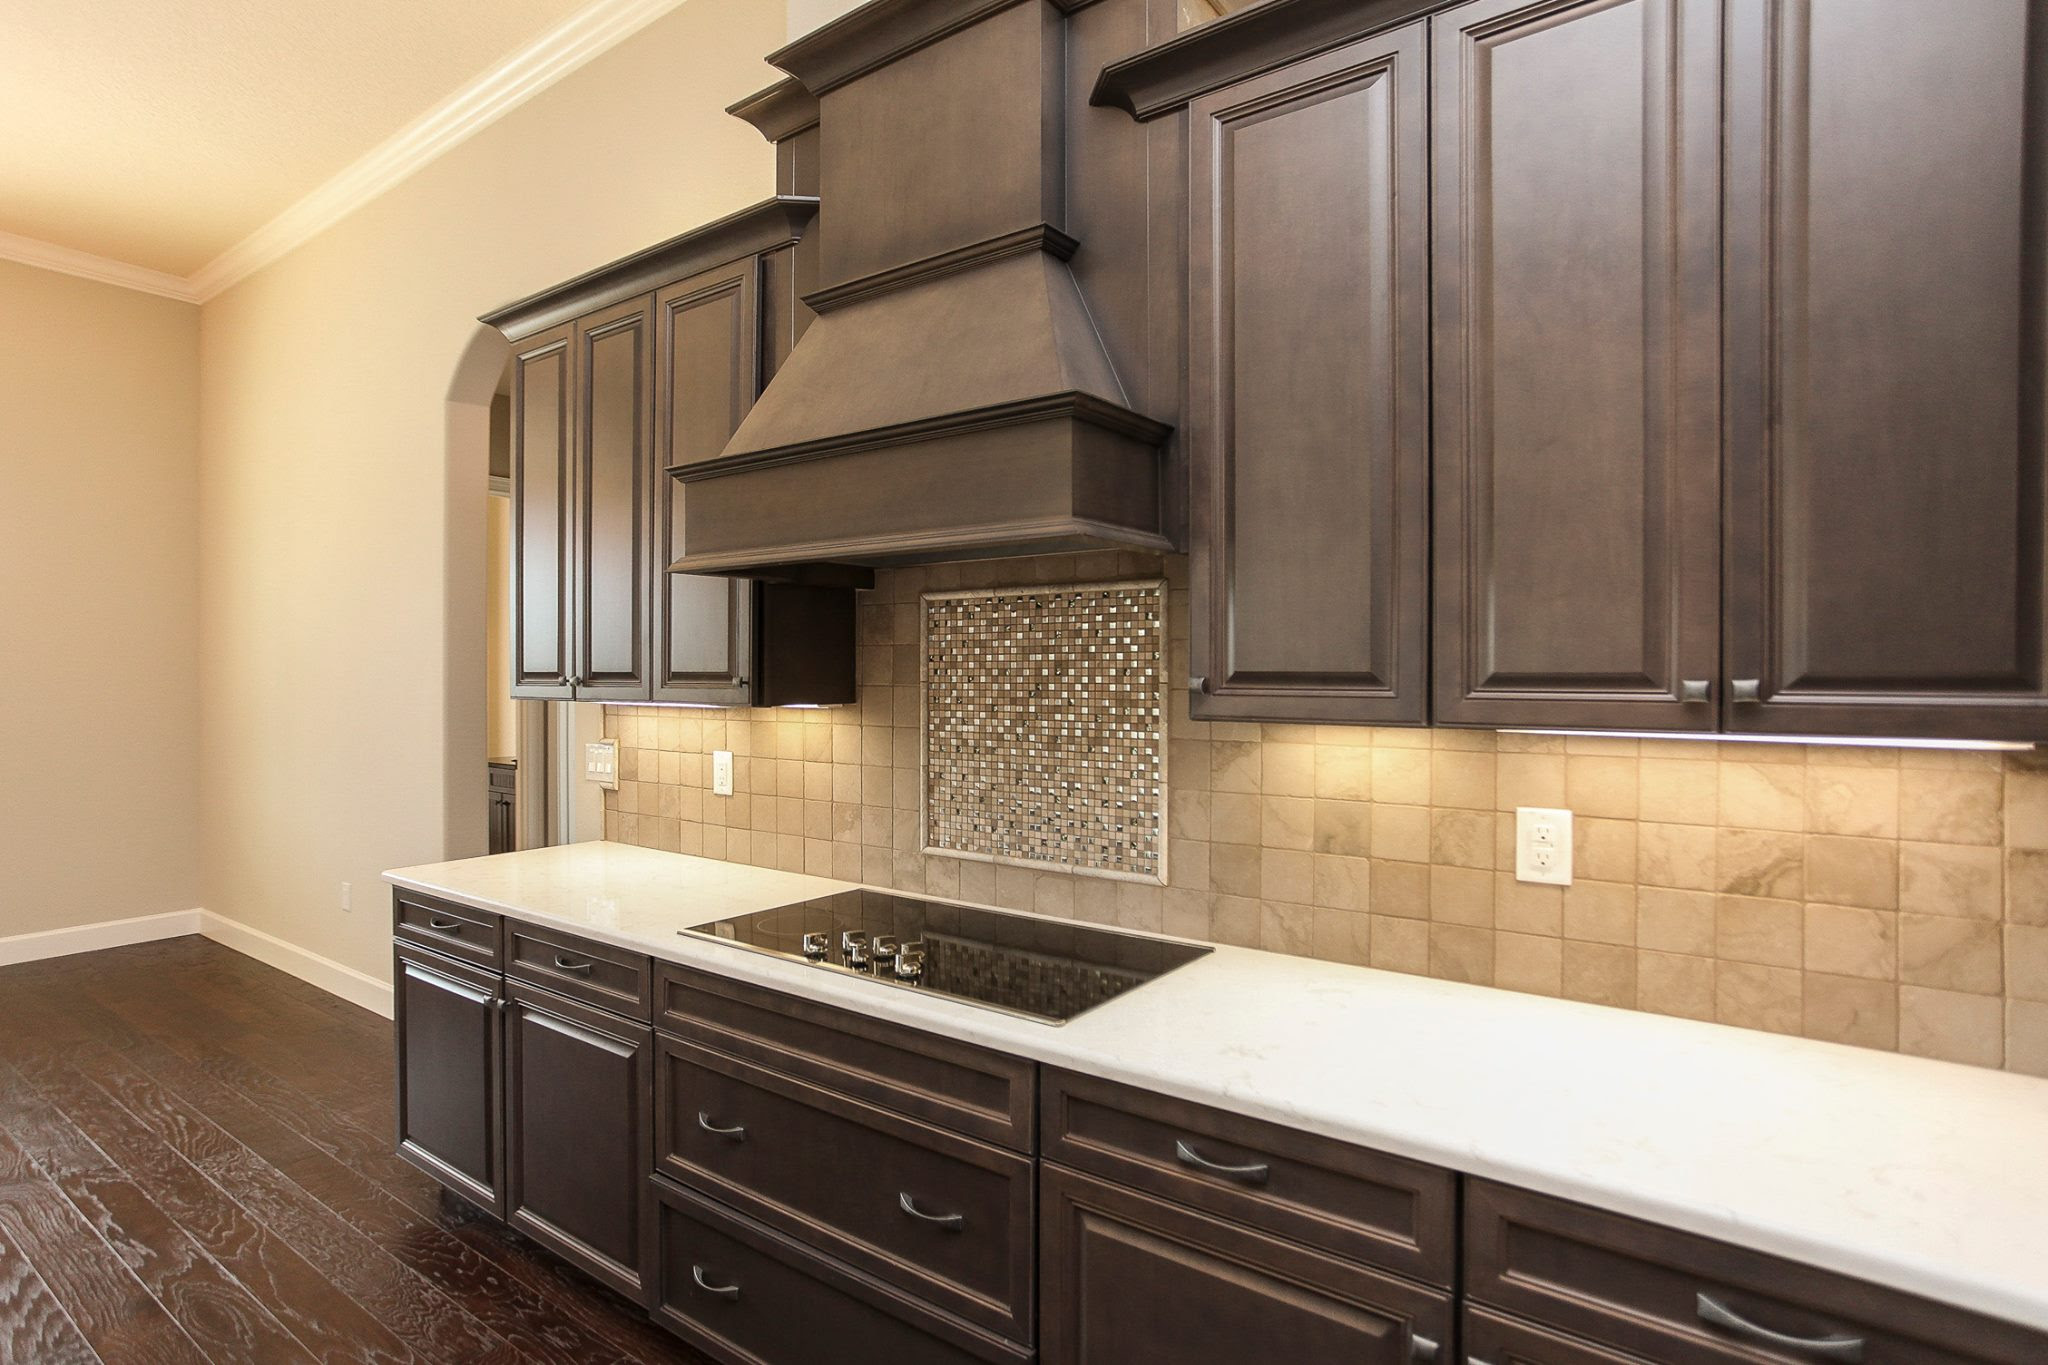 New Kitchen Construction with Marsh Cabinets, Stanisci ...